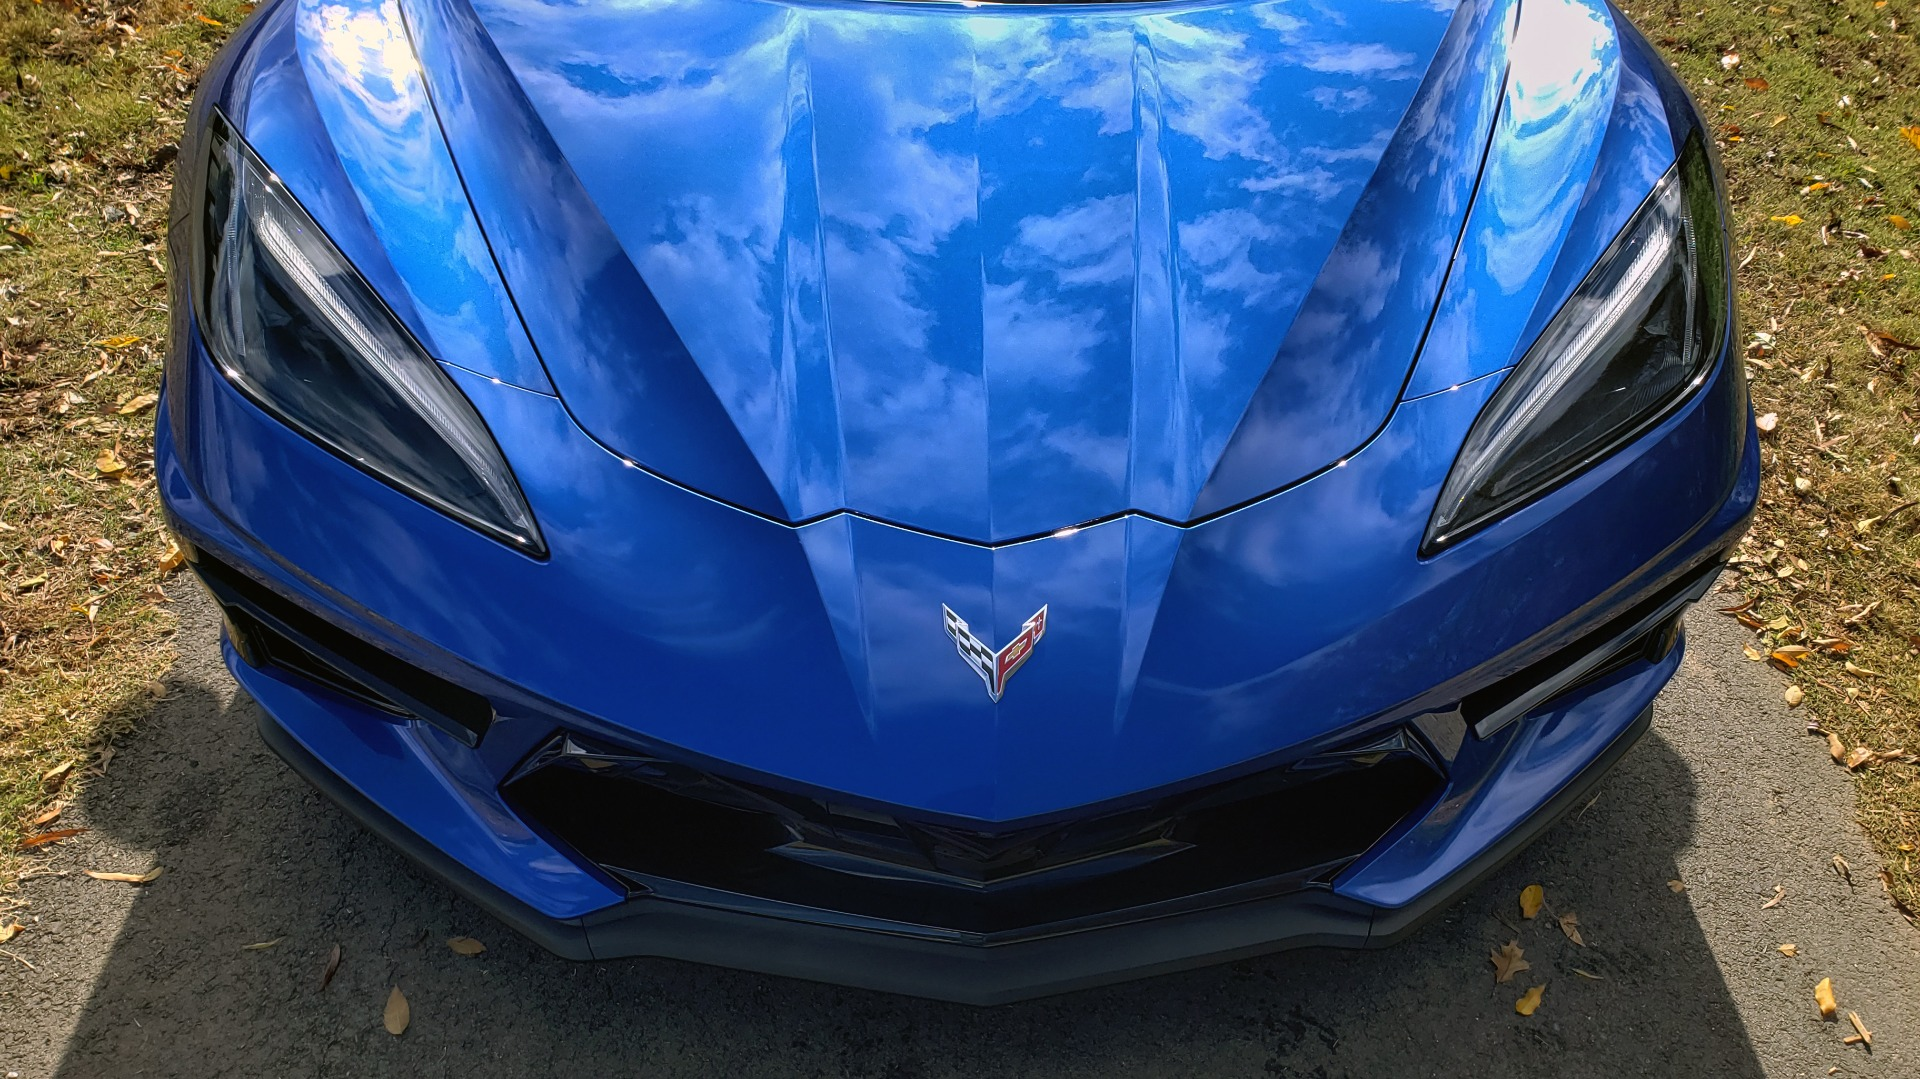 Used 2020 Chevrolet C8 CORVETTE STINGRAY 2LT COUPE / NAV / HUD / BOSE / GT2 SEATS / FRONT LIFT / REARVIEW for sale $98,999 at Formula Imports in Charlotte NC 28227 34